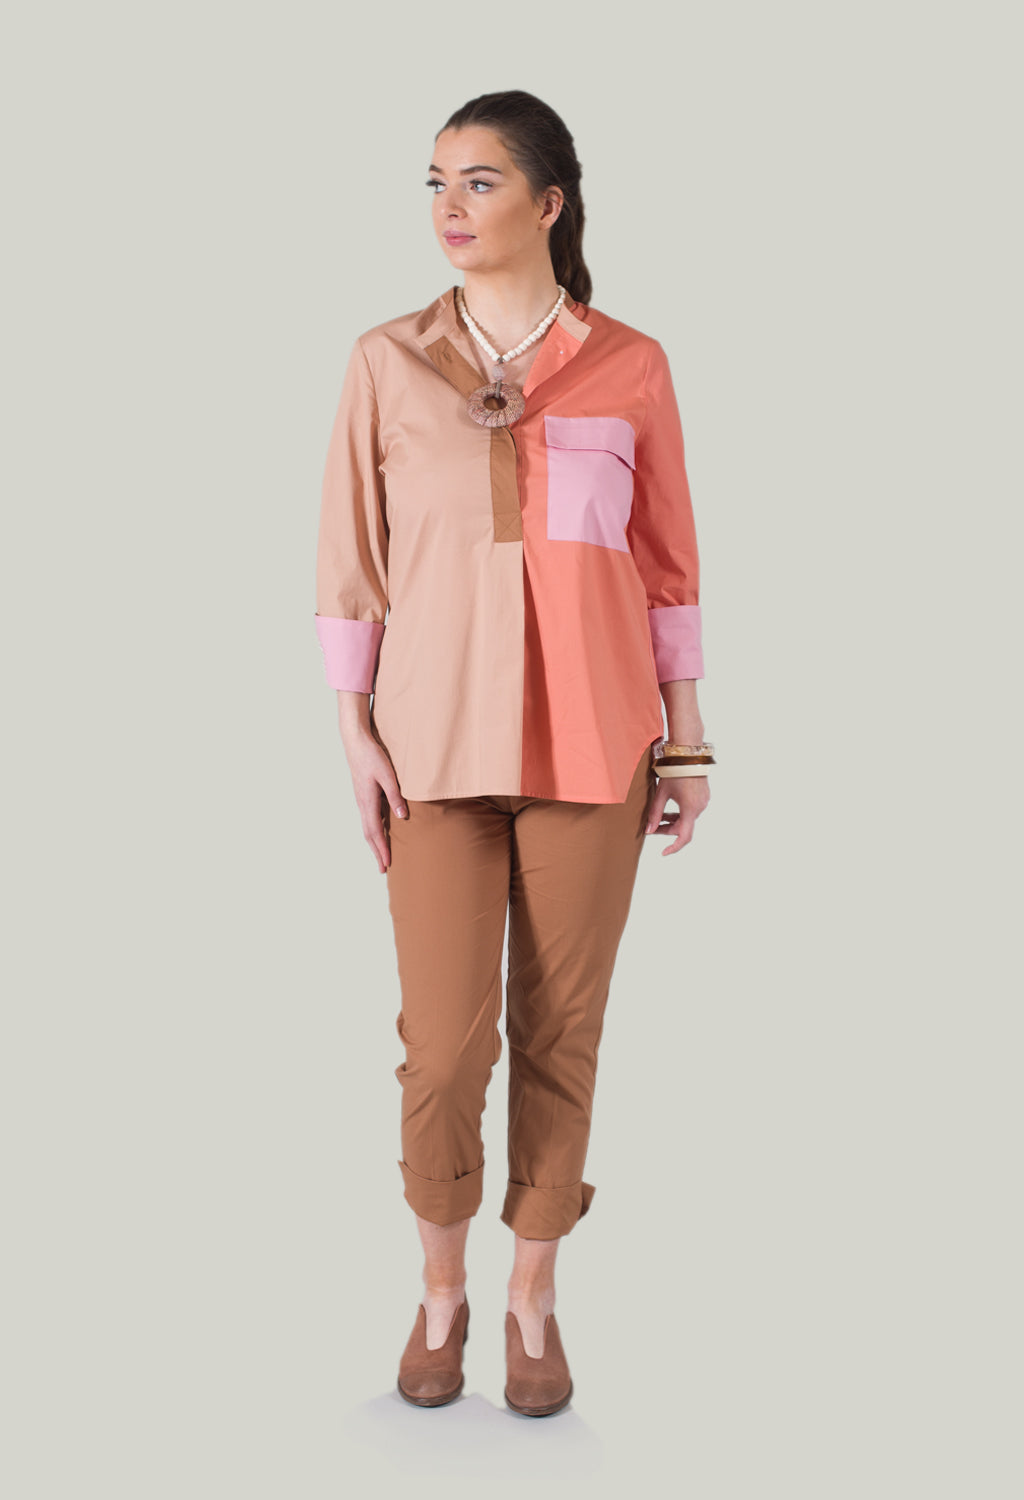 Colourblock Blouse in Light Brown